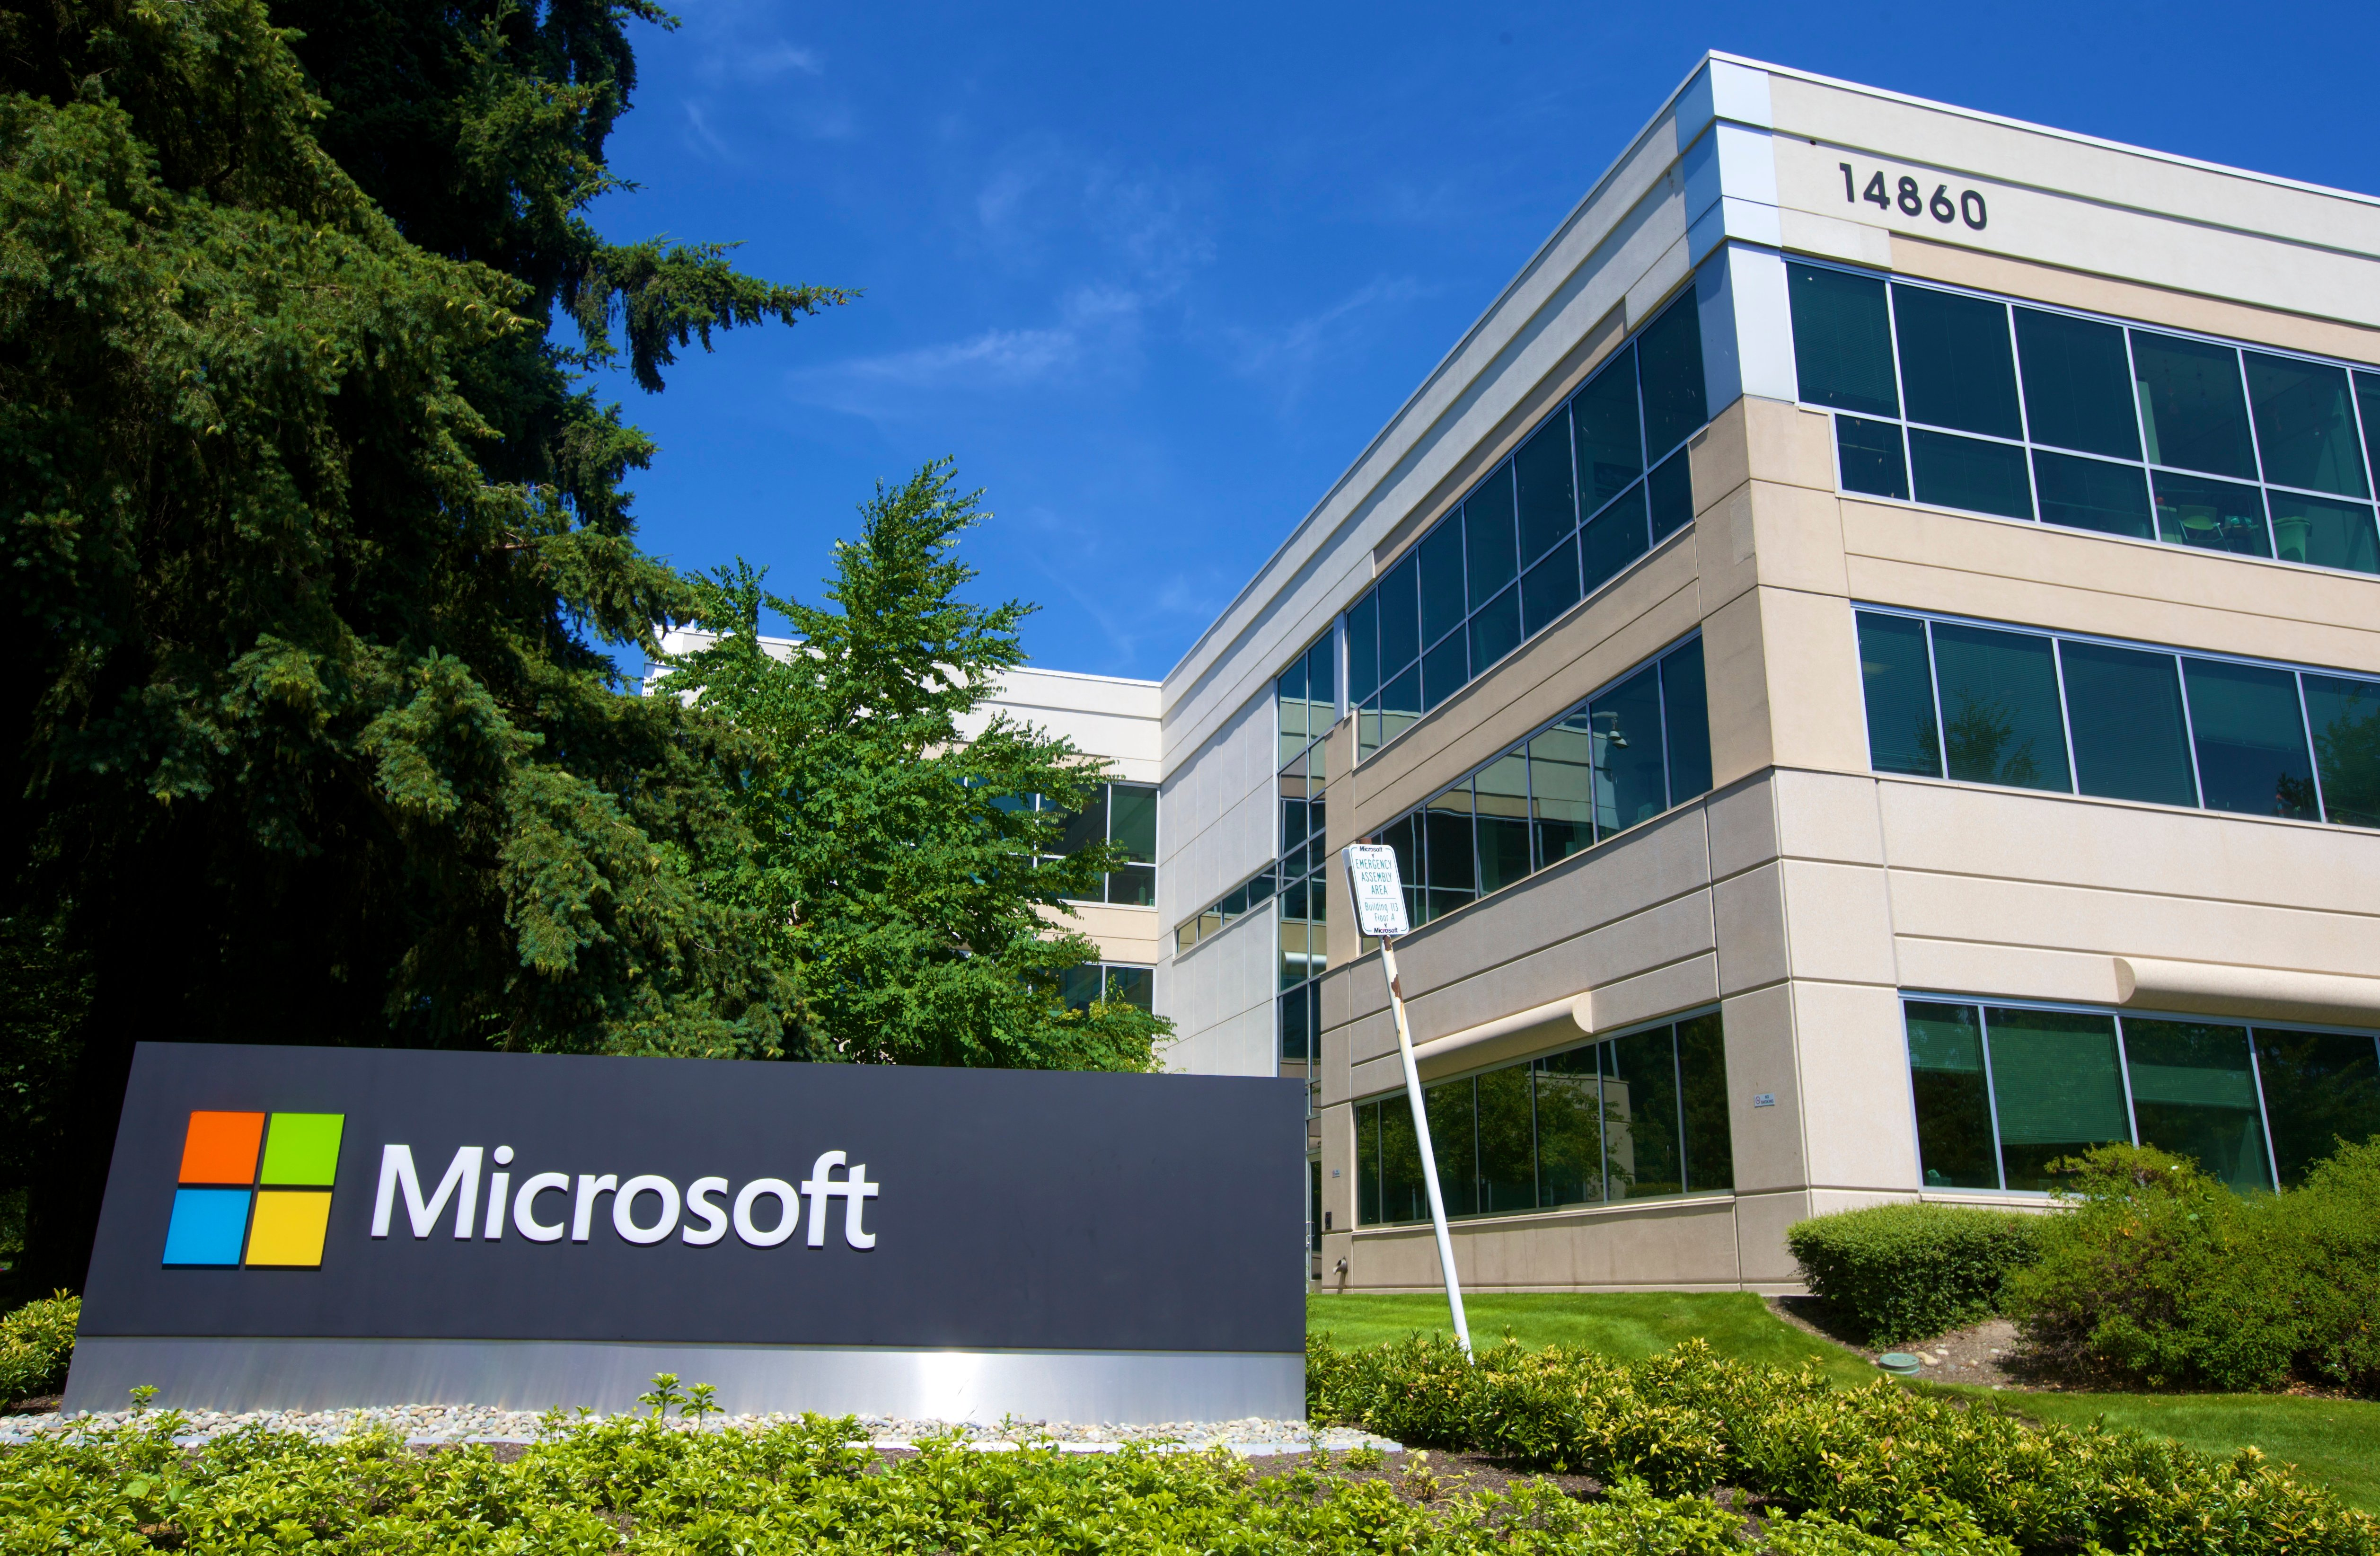 A building on the Microsoft Headquarters campus is pictured July 17, 2014 in Redmond, Washington. (Stephen Brashear/Getty Images)